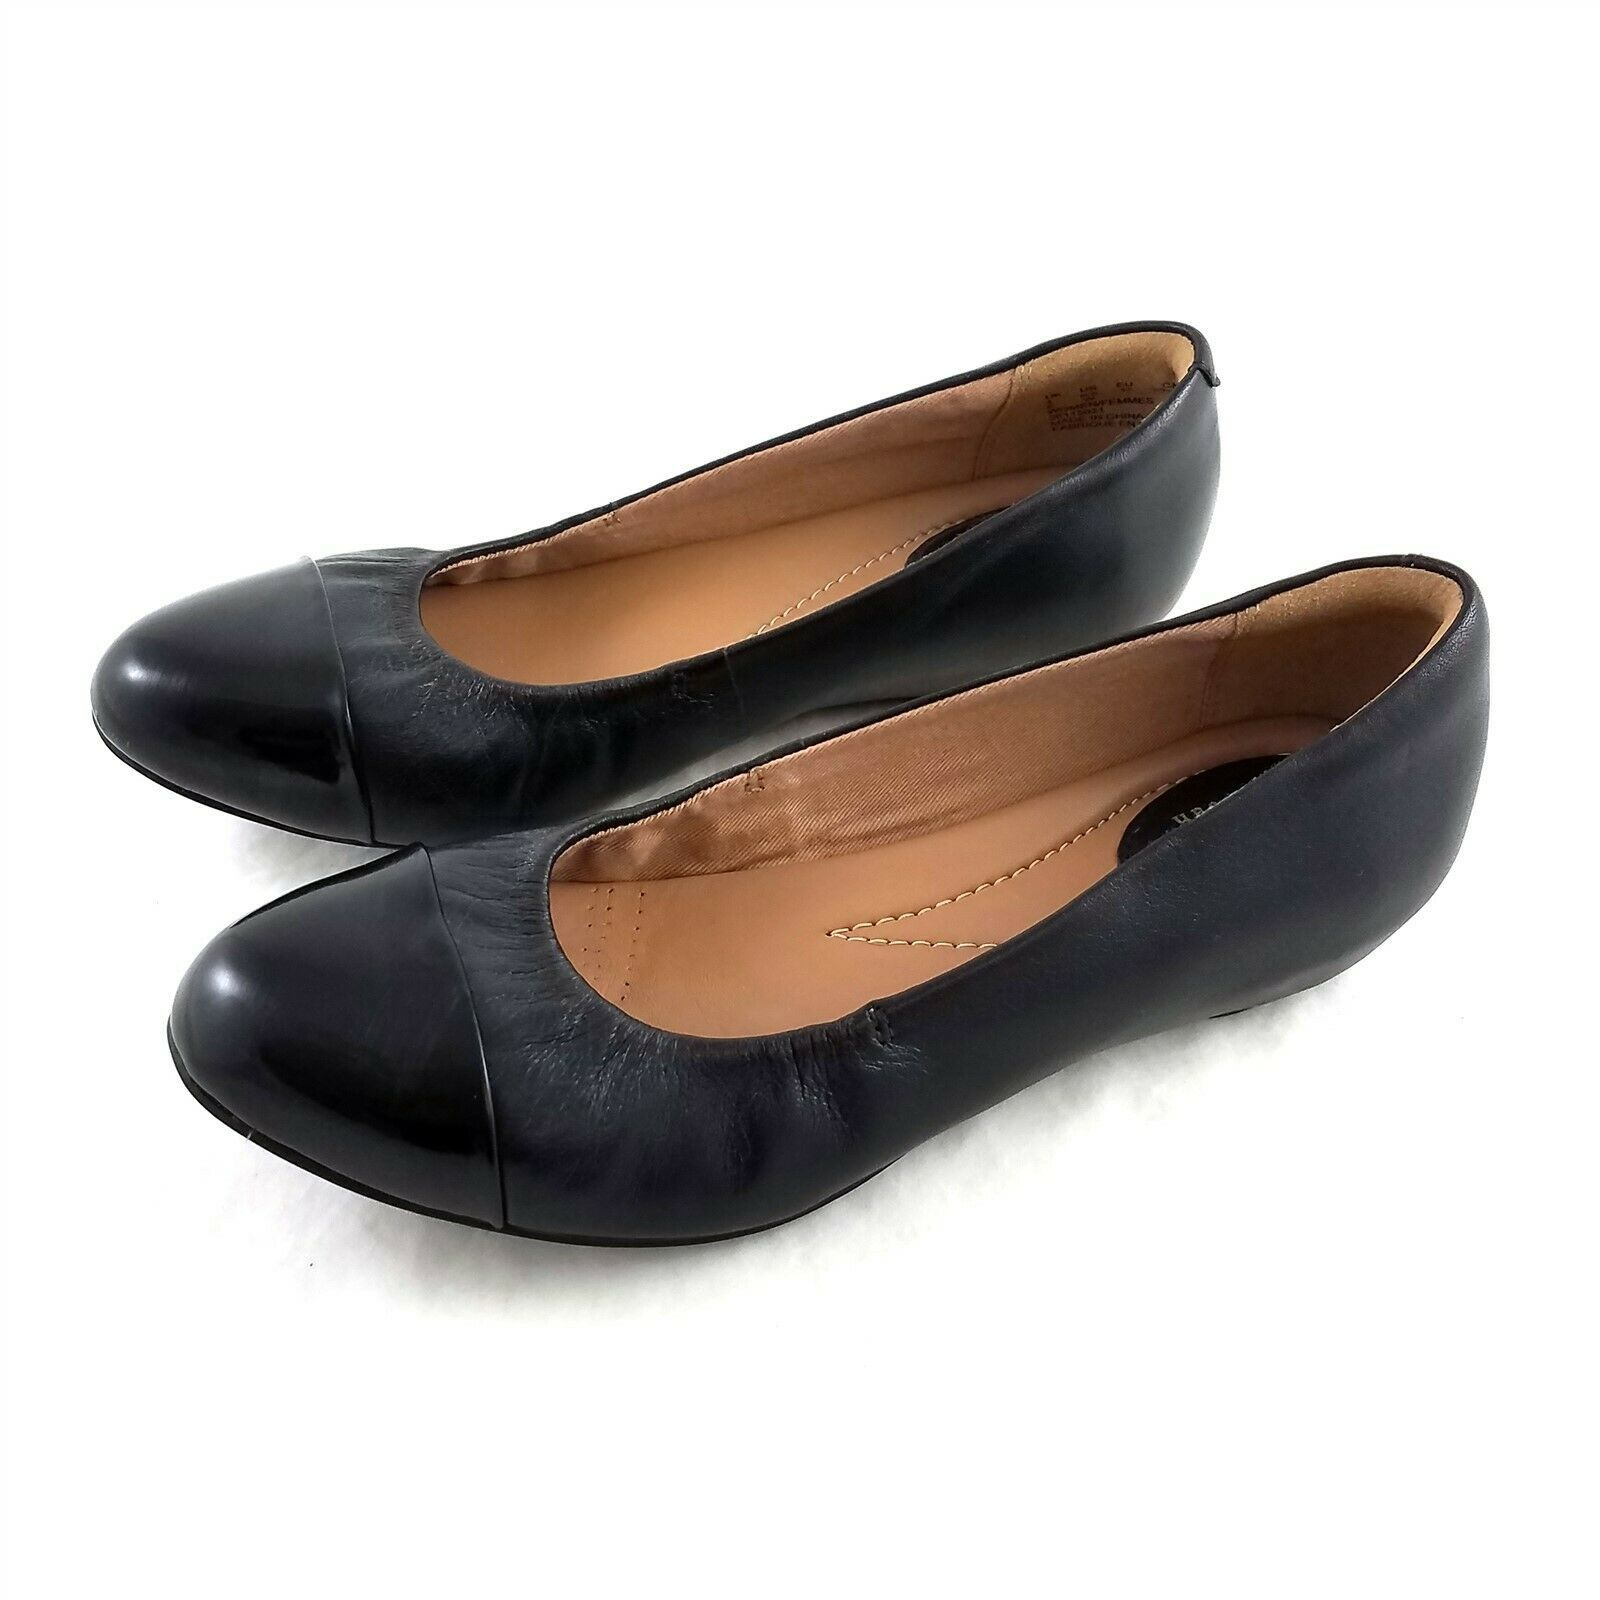 Primary image for Clarks Artisan Black Leather Cap Toe Ballet Flats Comfort Shoes Womens 6.5 W